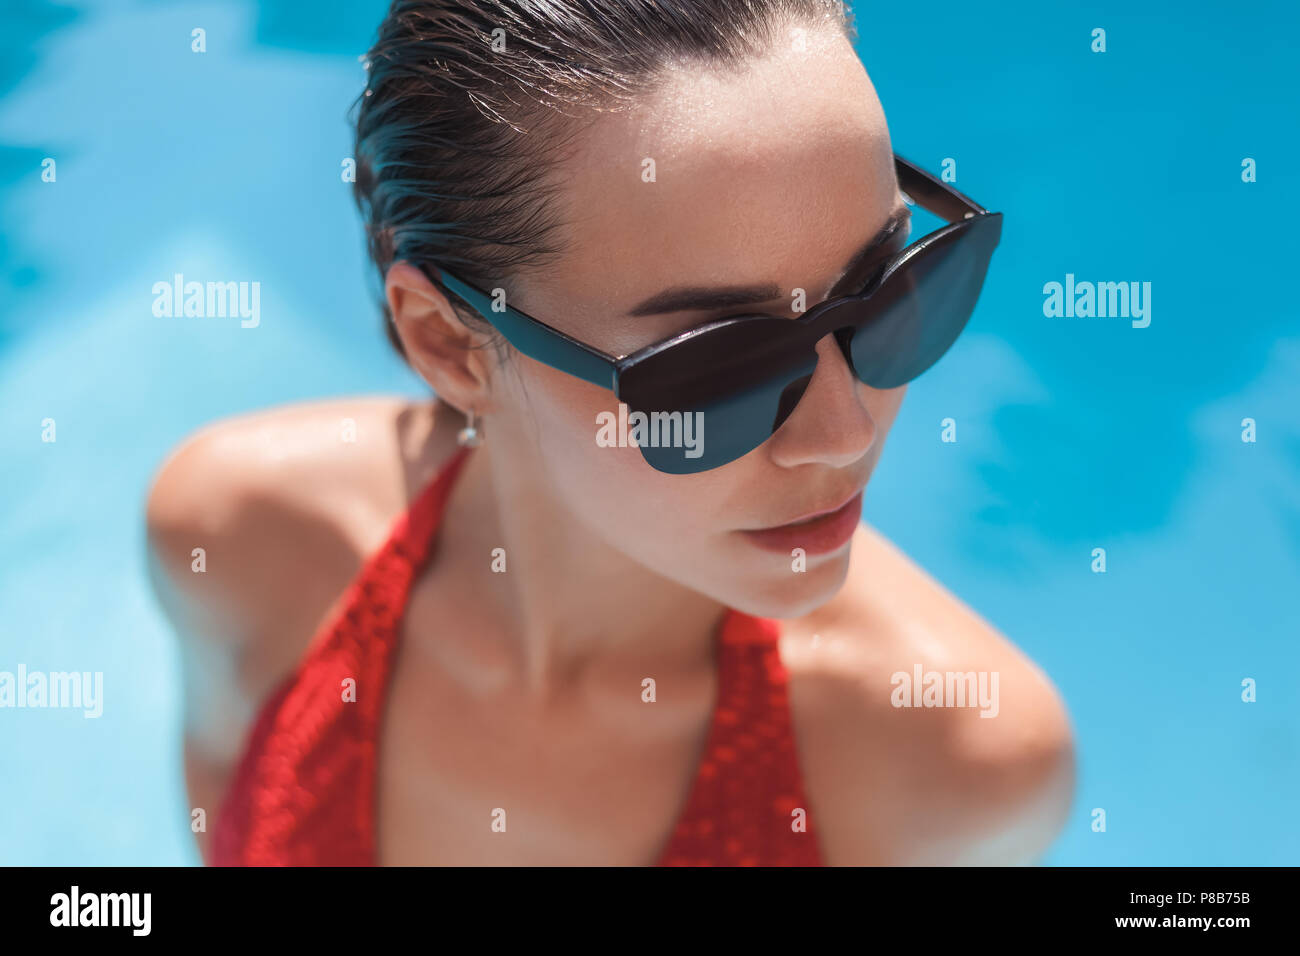 close-up portrait of young wet woman in bikini at swimming pool - Stock Image